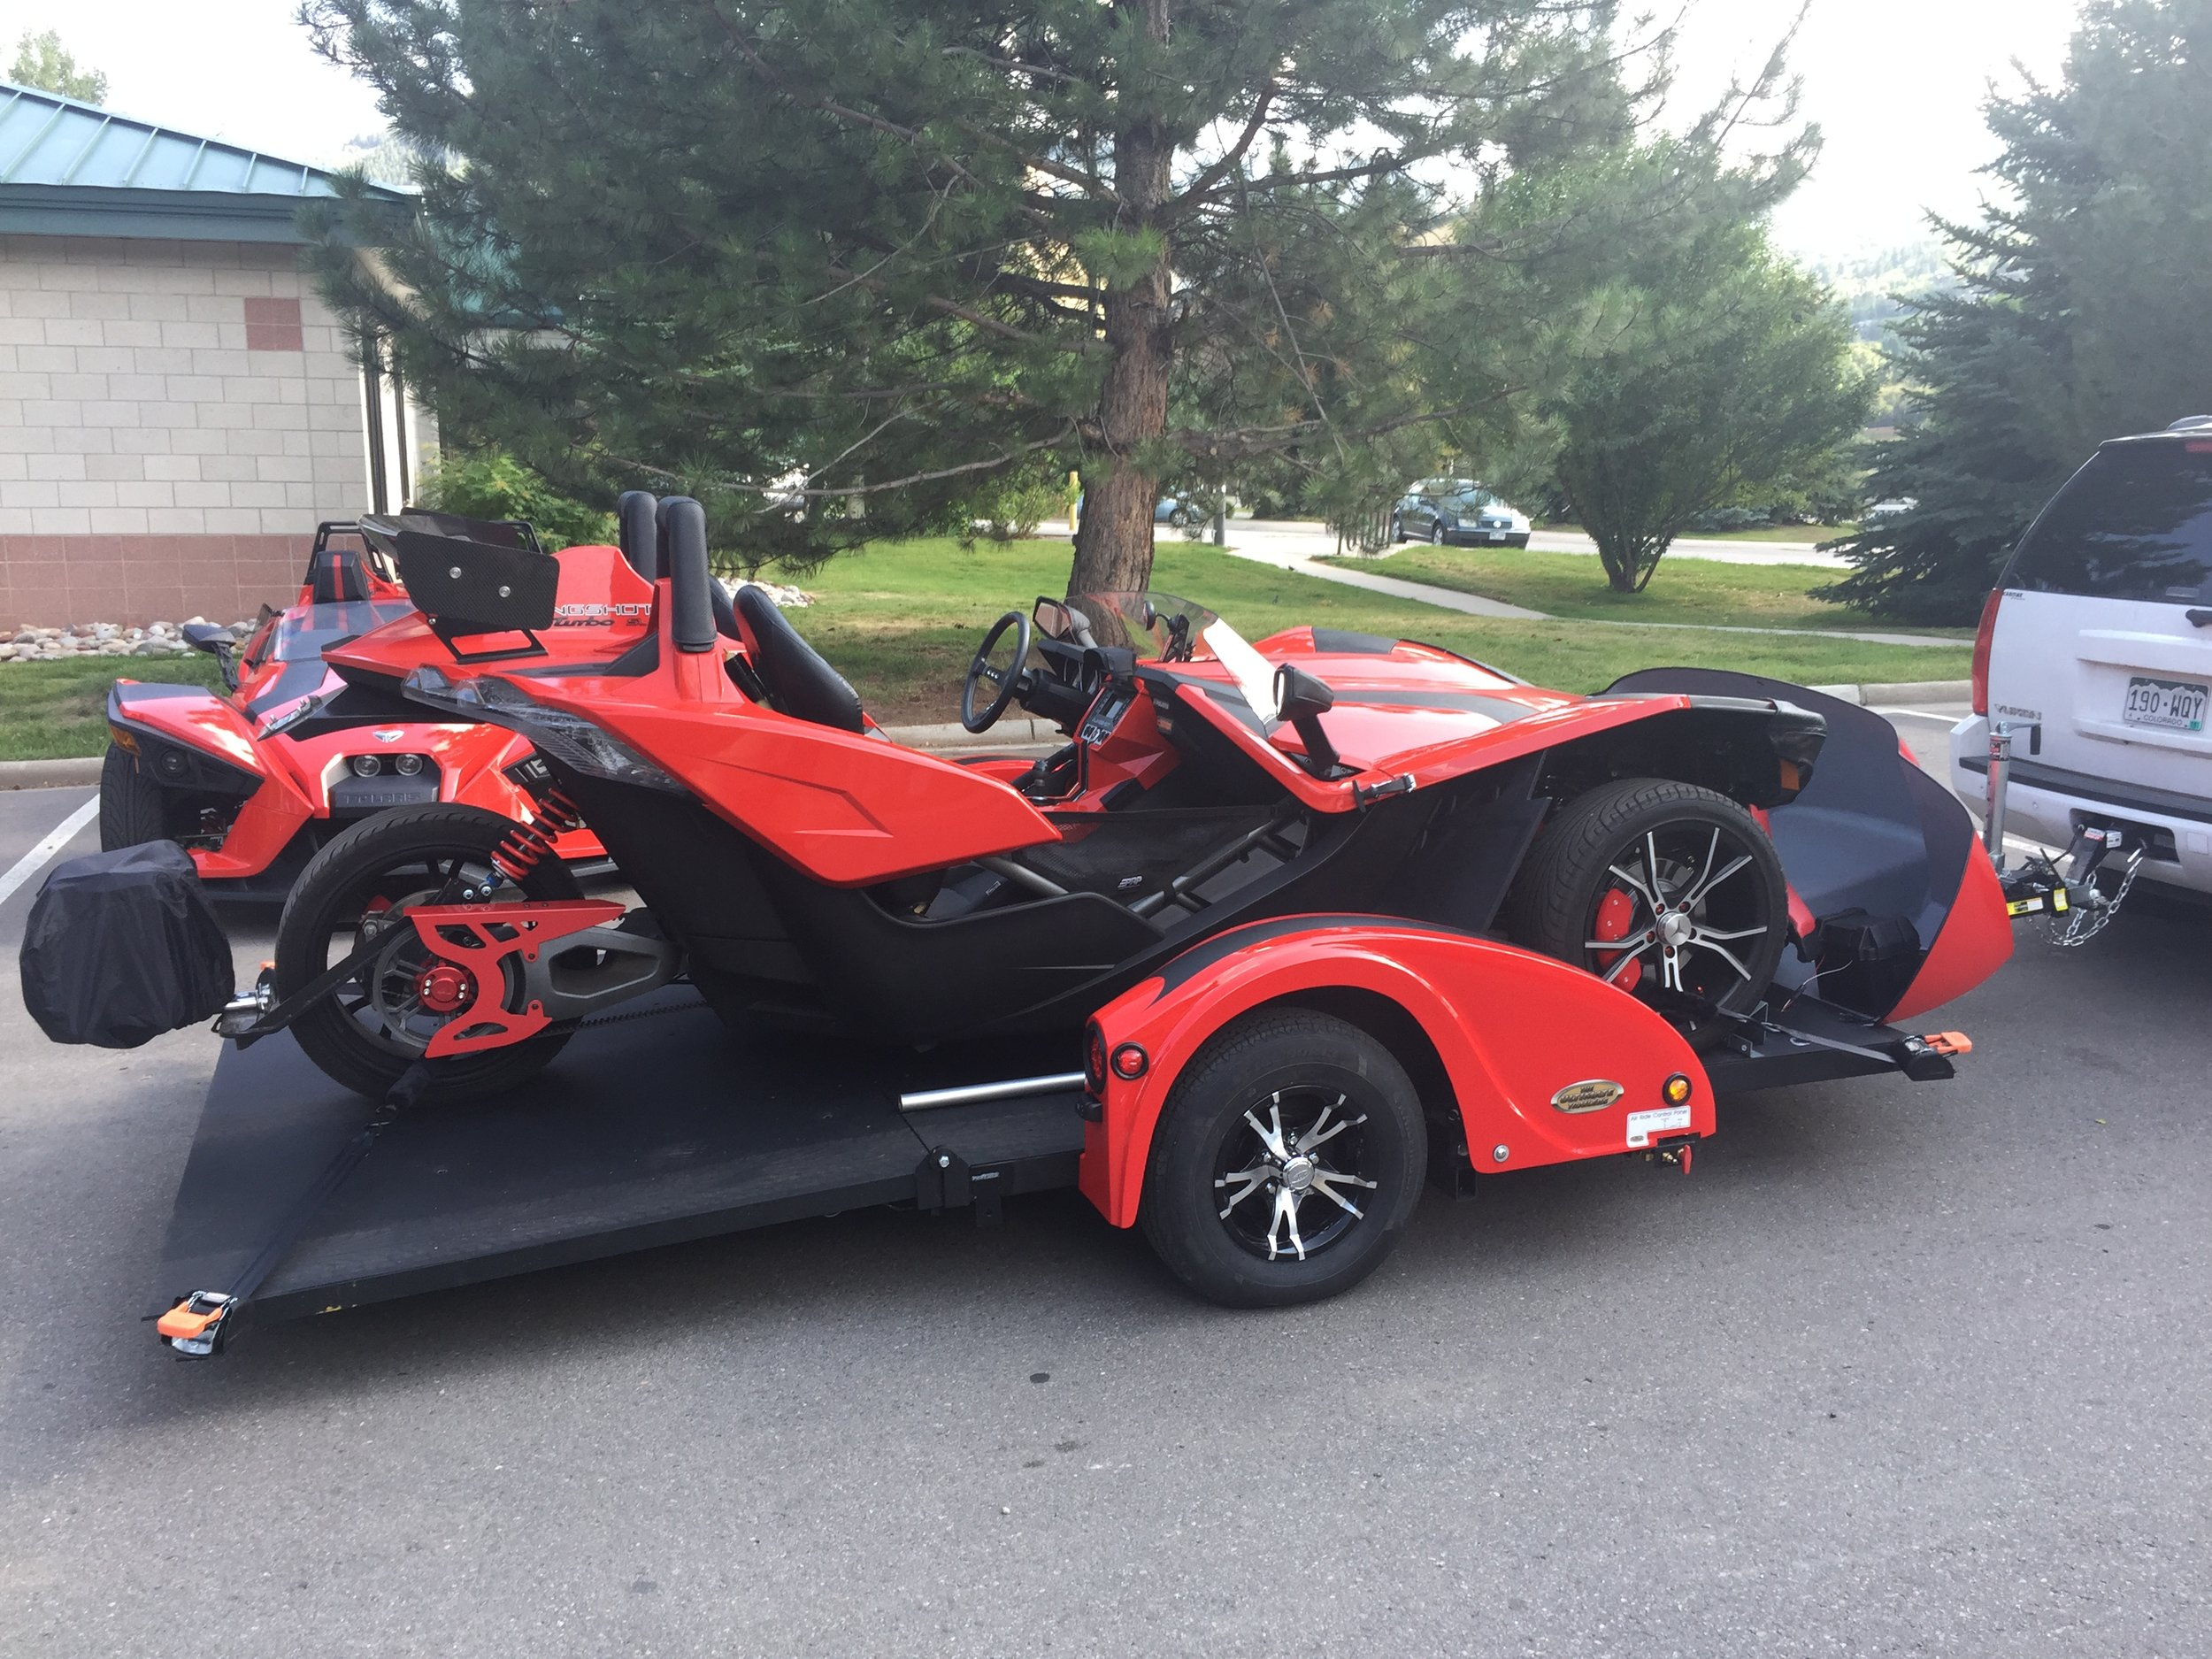 Best-Double-Wide-Dual-Motorcycle-Slingshot-Trailer-OHT4-01